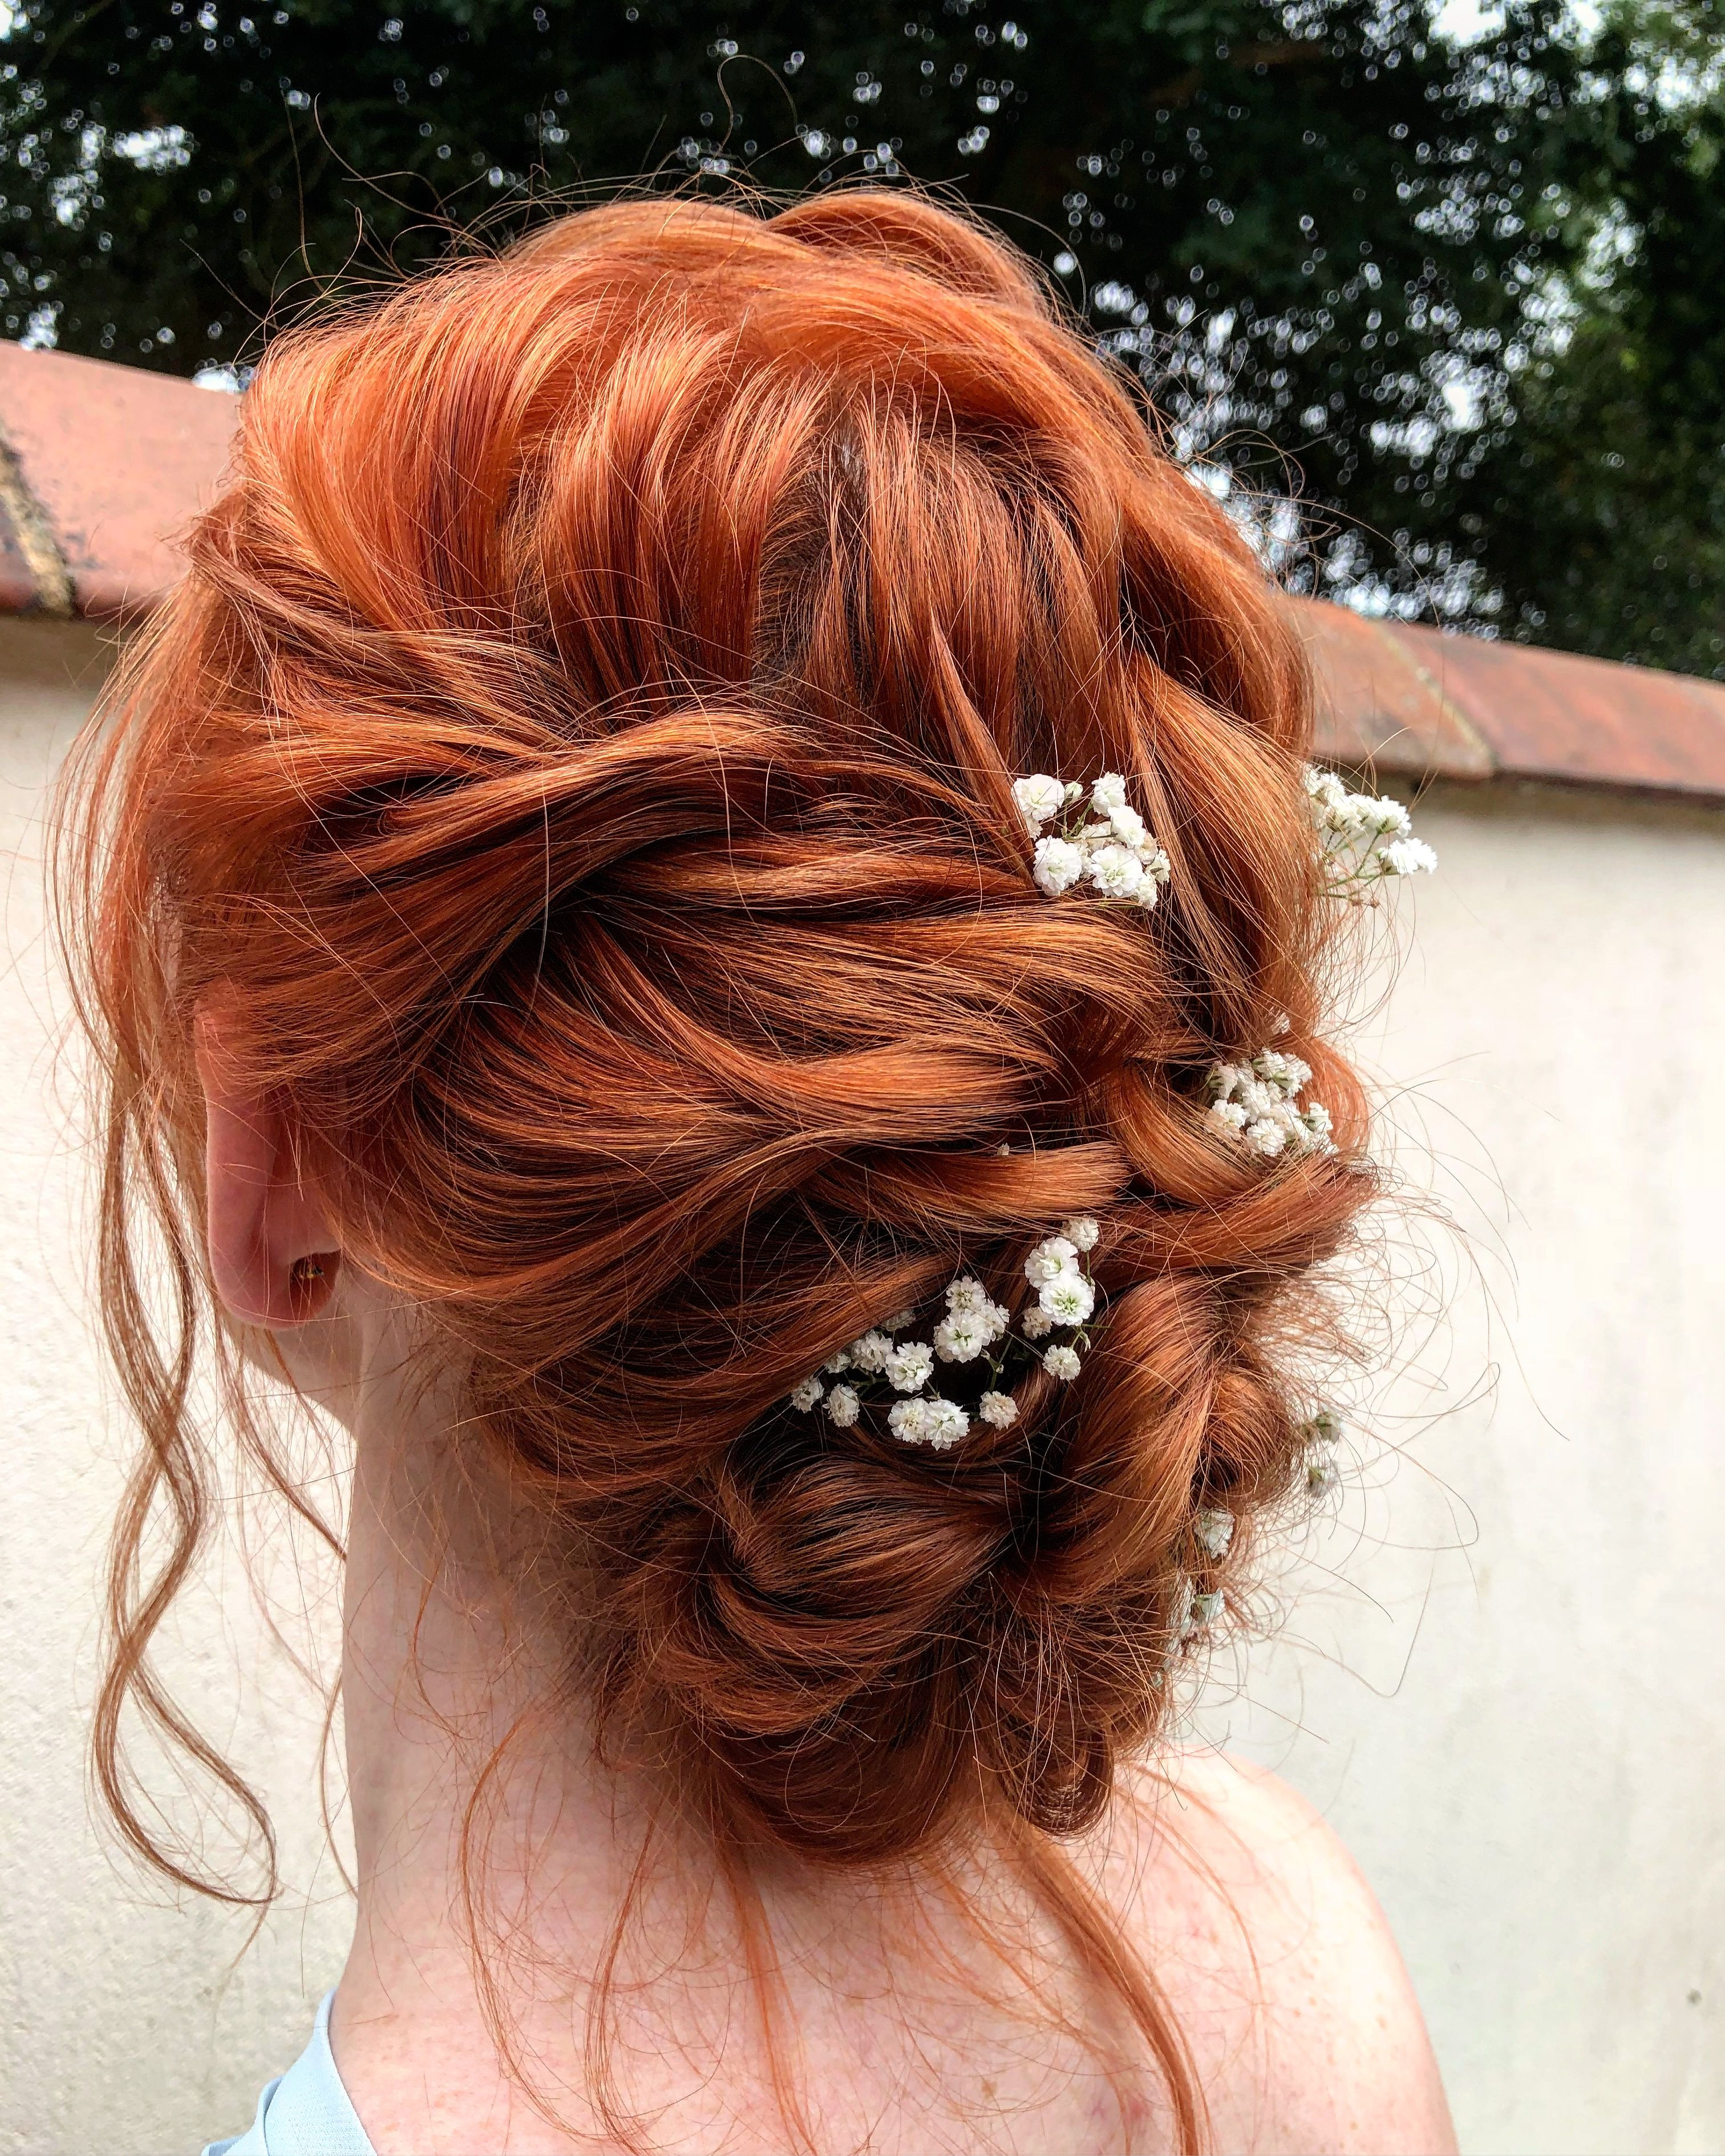 www.theupdogirl #theupdogirl #updo #hairstyle #redhead